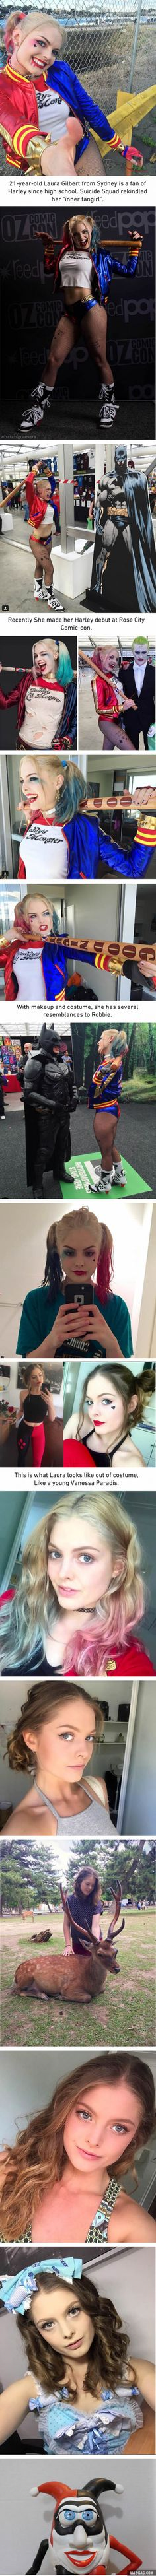 Among All The Harley Quinn Cosplays Out There, This Might Be The Closest One…